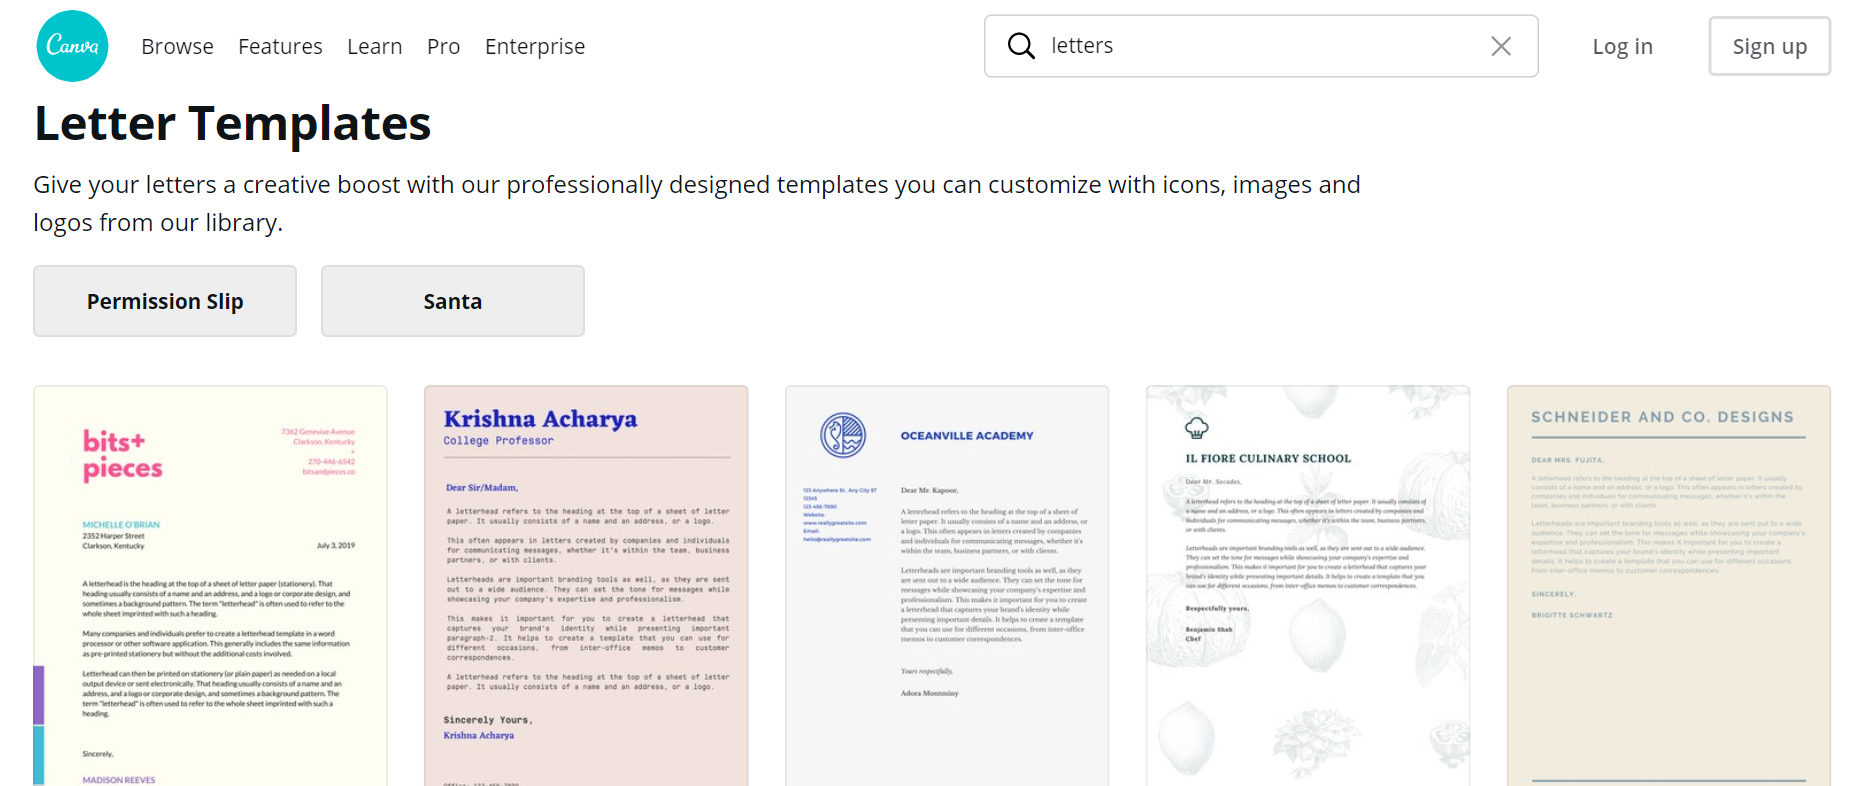 Canva letter templates as one of recommended tools for startups